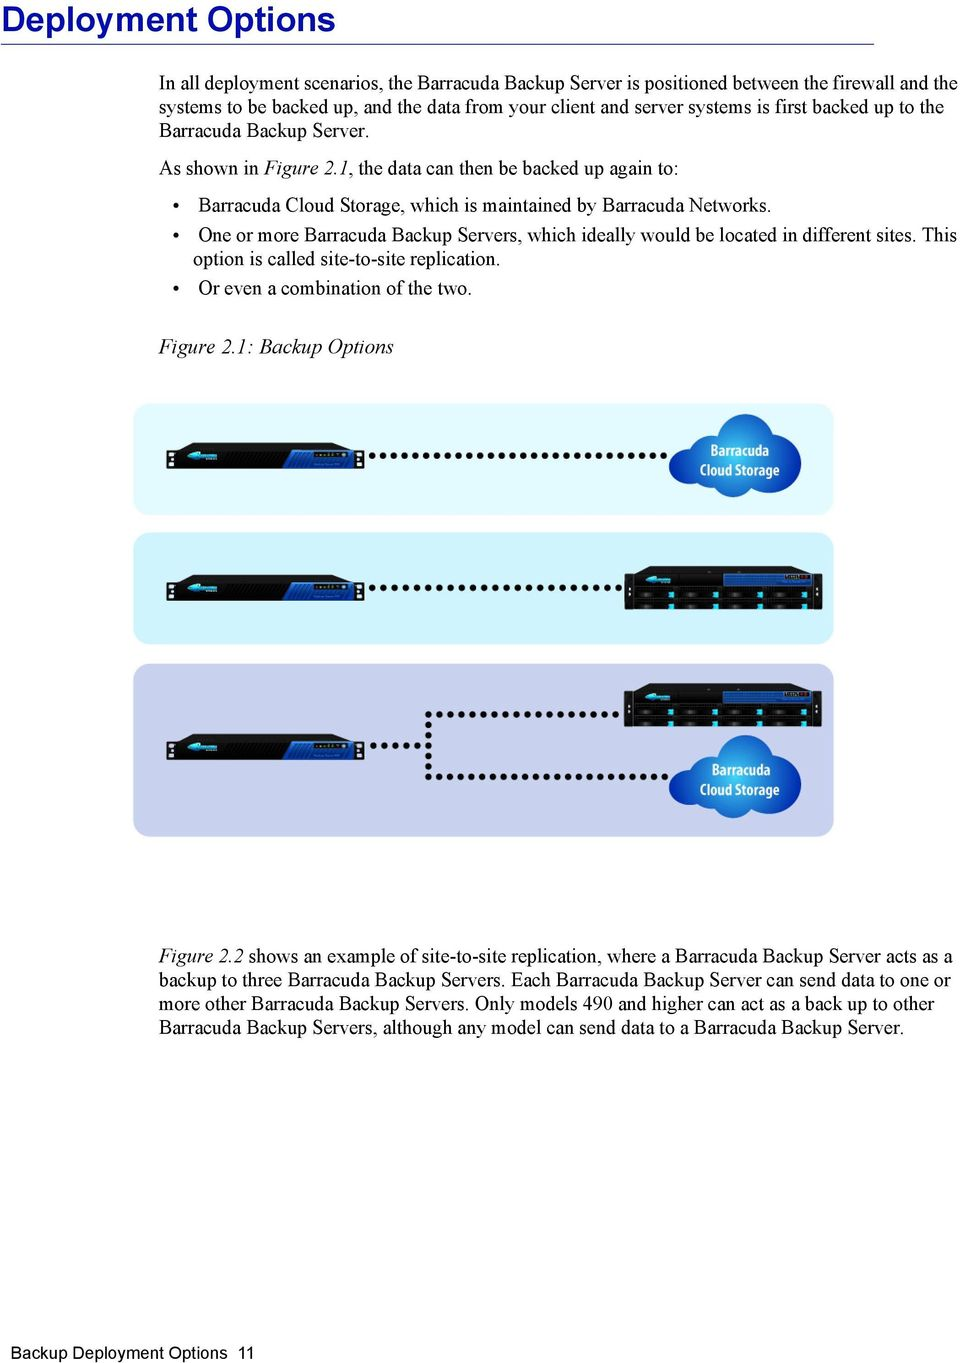 One or more Barracuda Backup Servers, which ideally would be located in different sites. This option is called site-to-site replication. Or even a combination of the two. Figure 2.